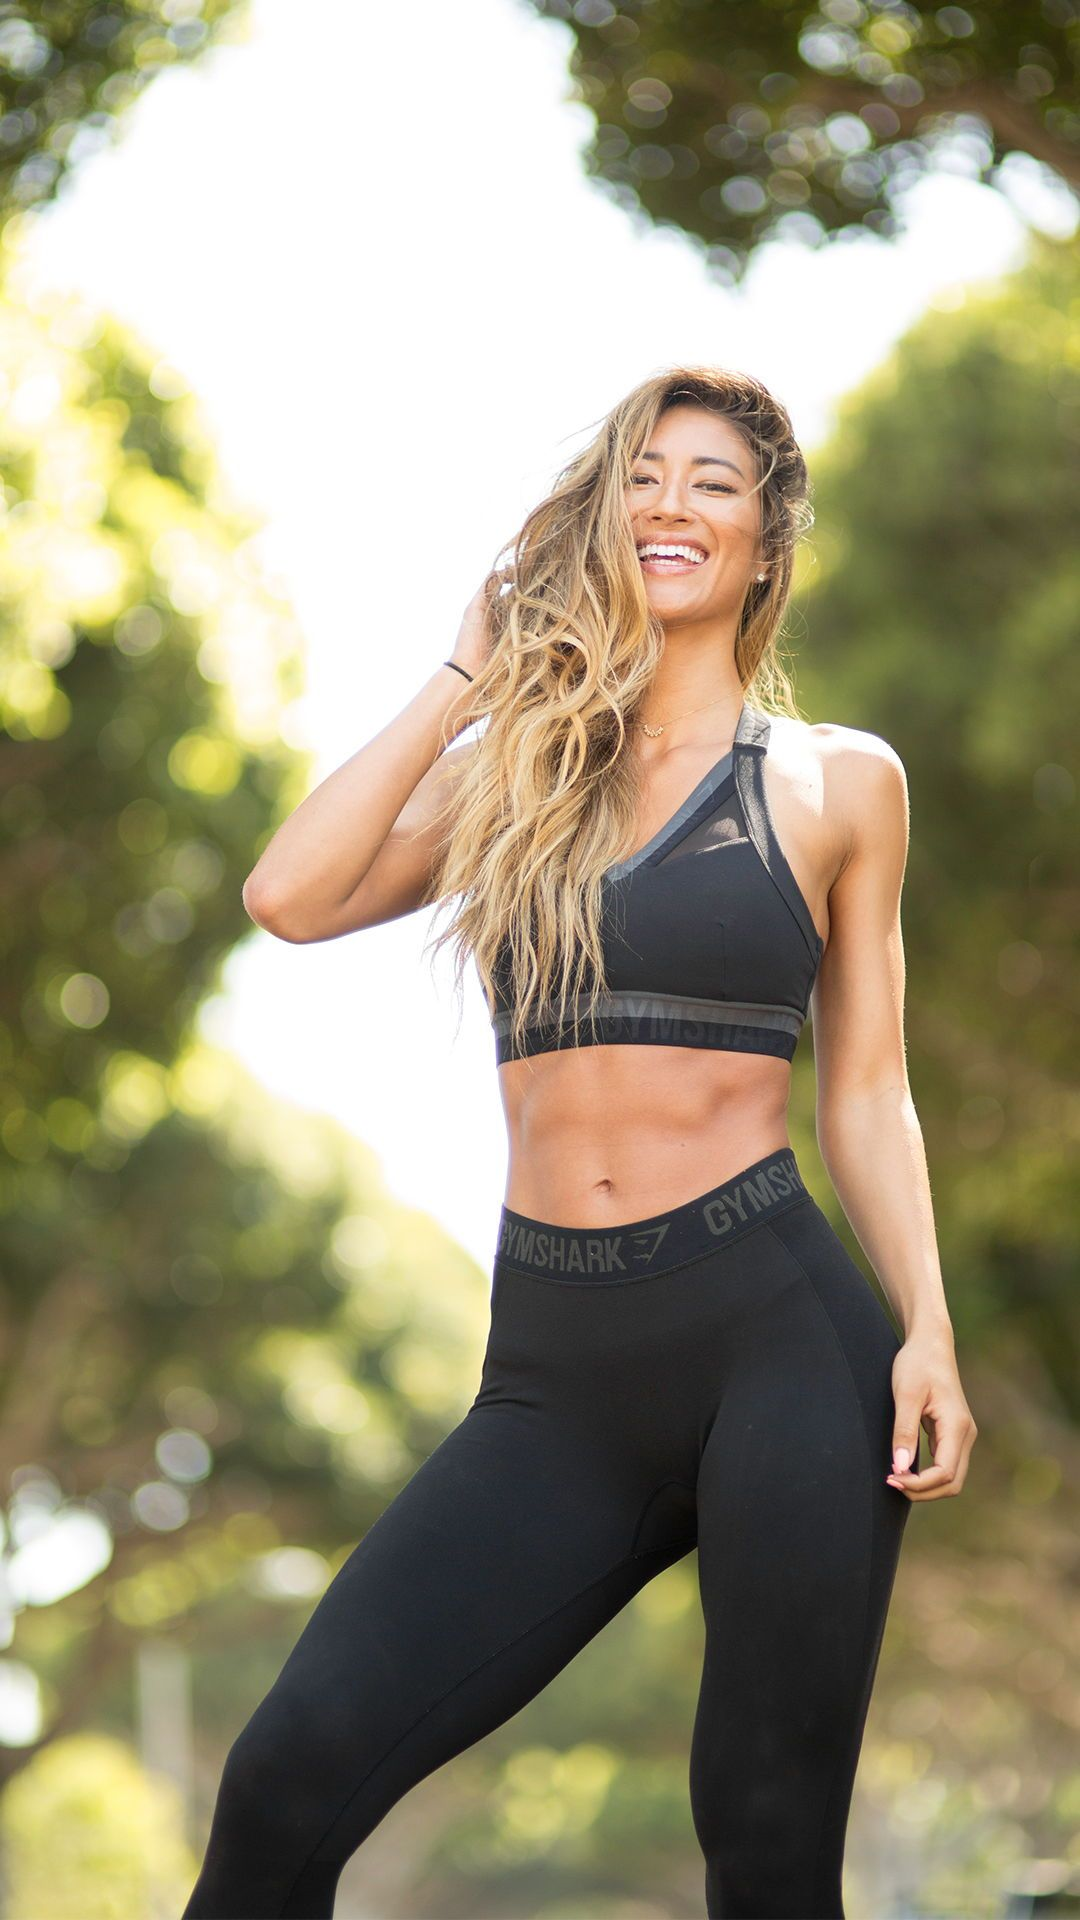 2400b68cb702c Karina Elle wearing the Empower Sports Bra teamed with the Flex Leggings in  Black Marl Black.  gymshark  gymsharkwomen  fitness